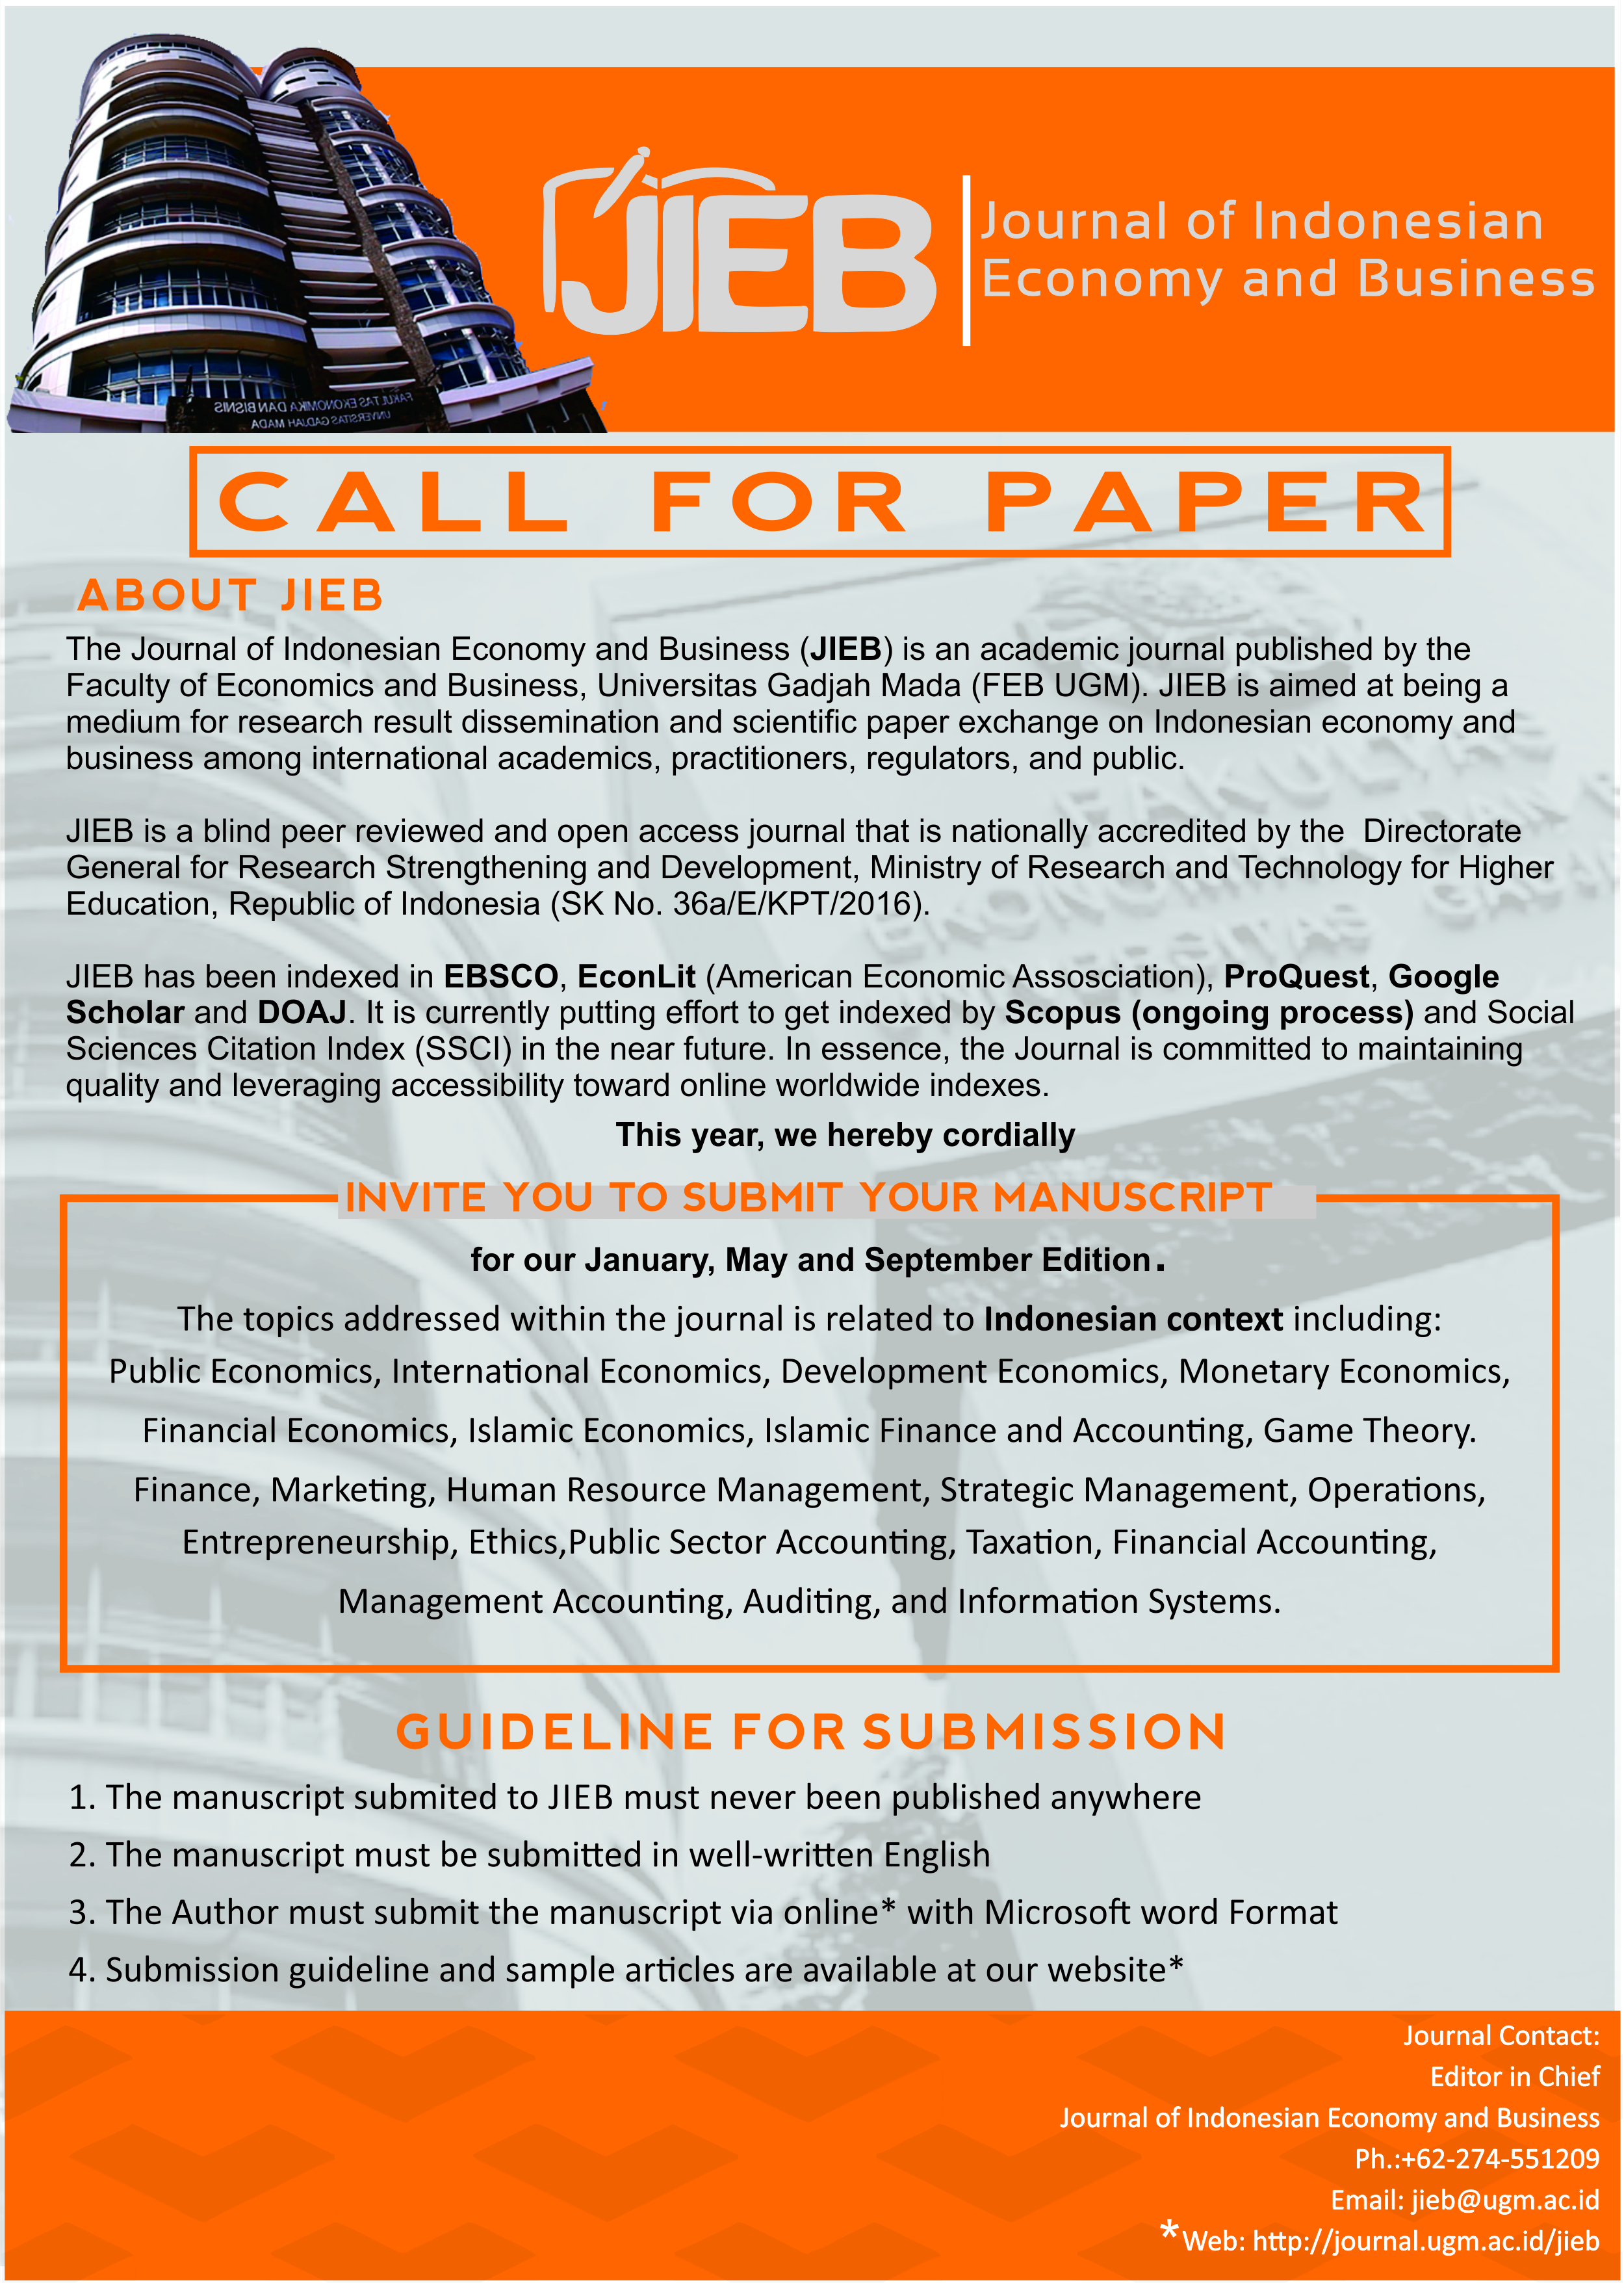 call for paper JIEB